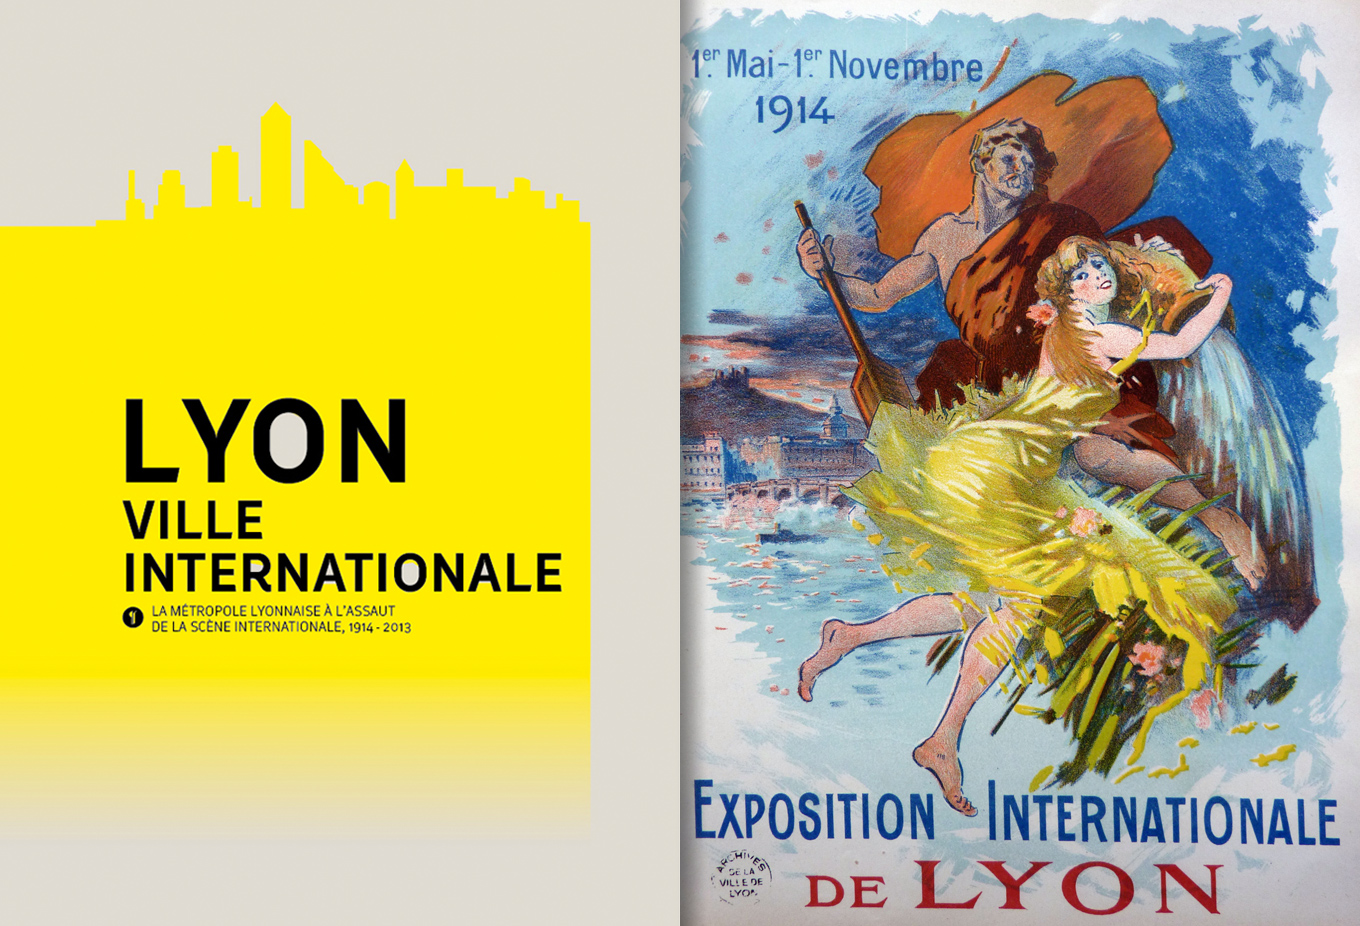 lyon ville internationale editions libel maison d 233 dition lyon